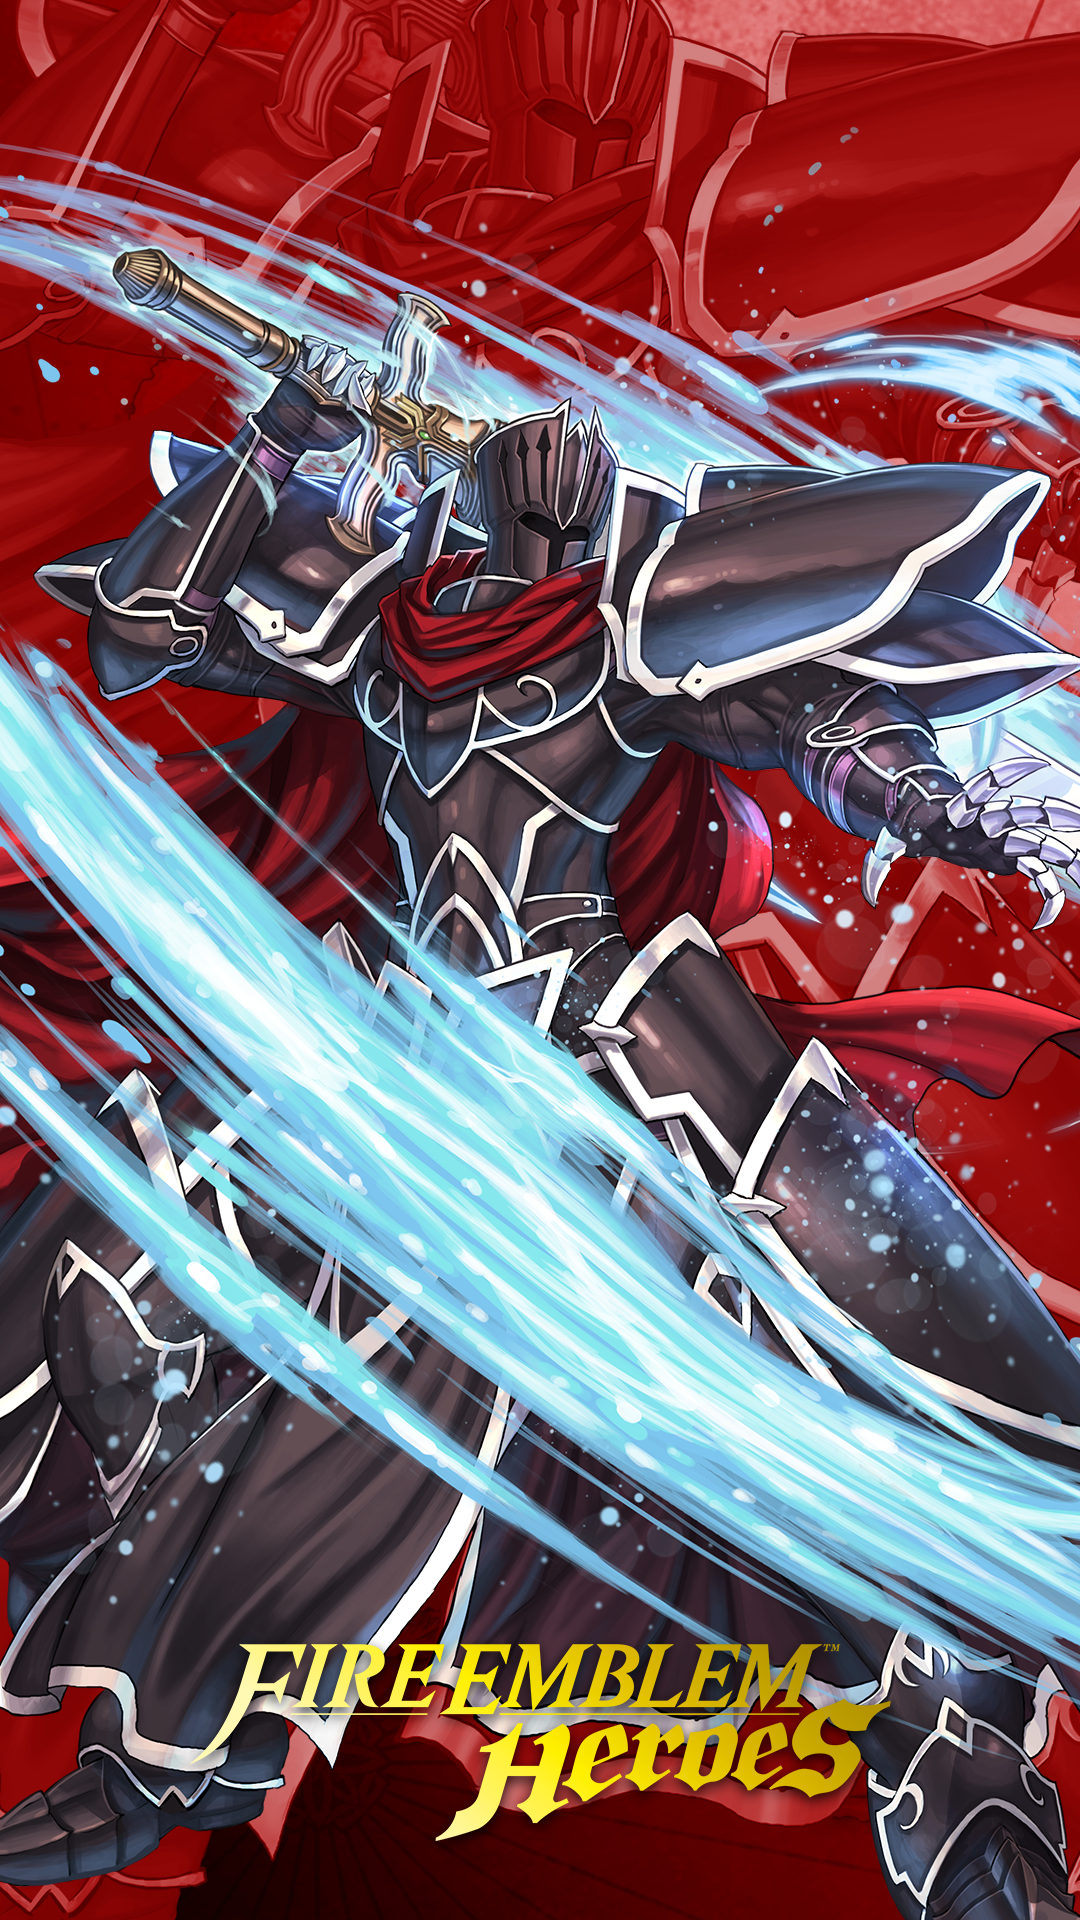 A Hero Rises Wallpaper Collection Thread Fireemblemheroes